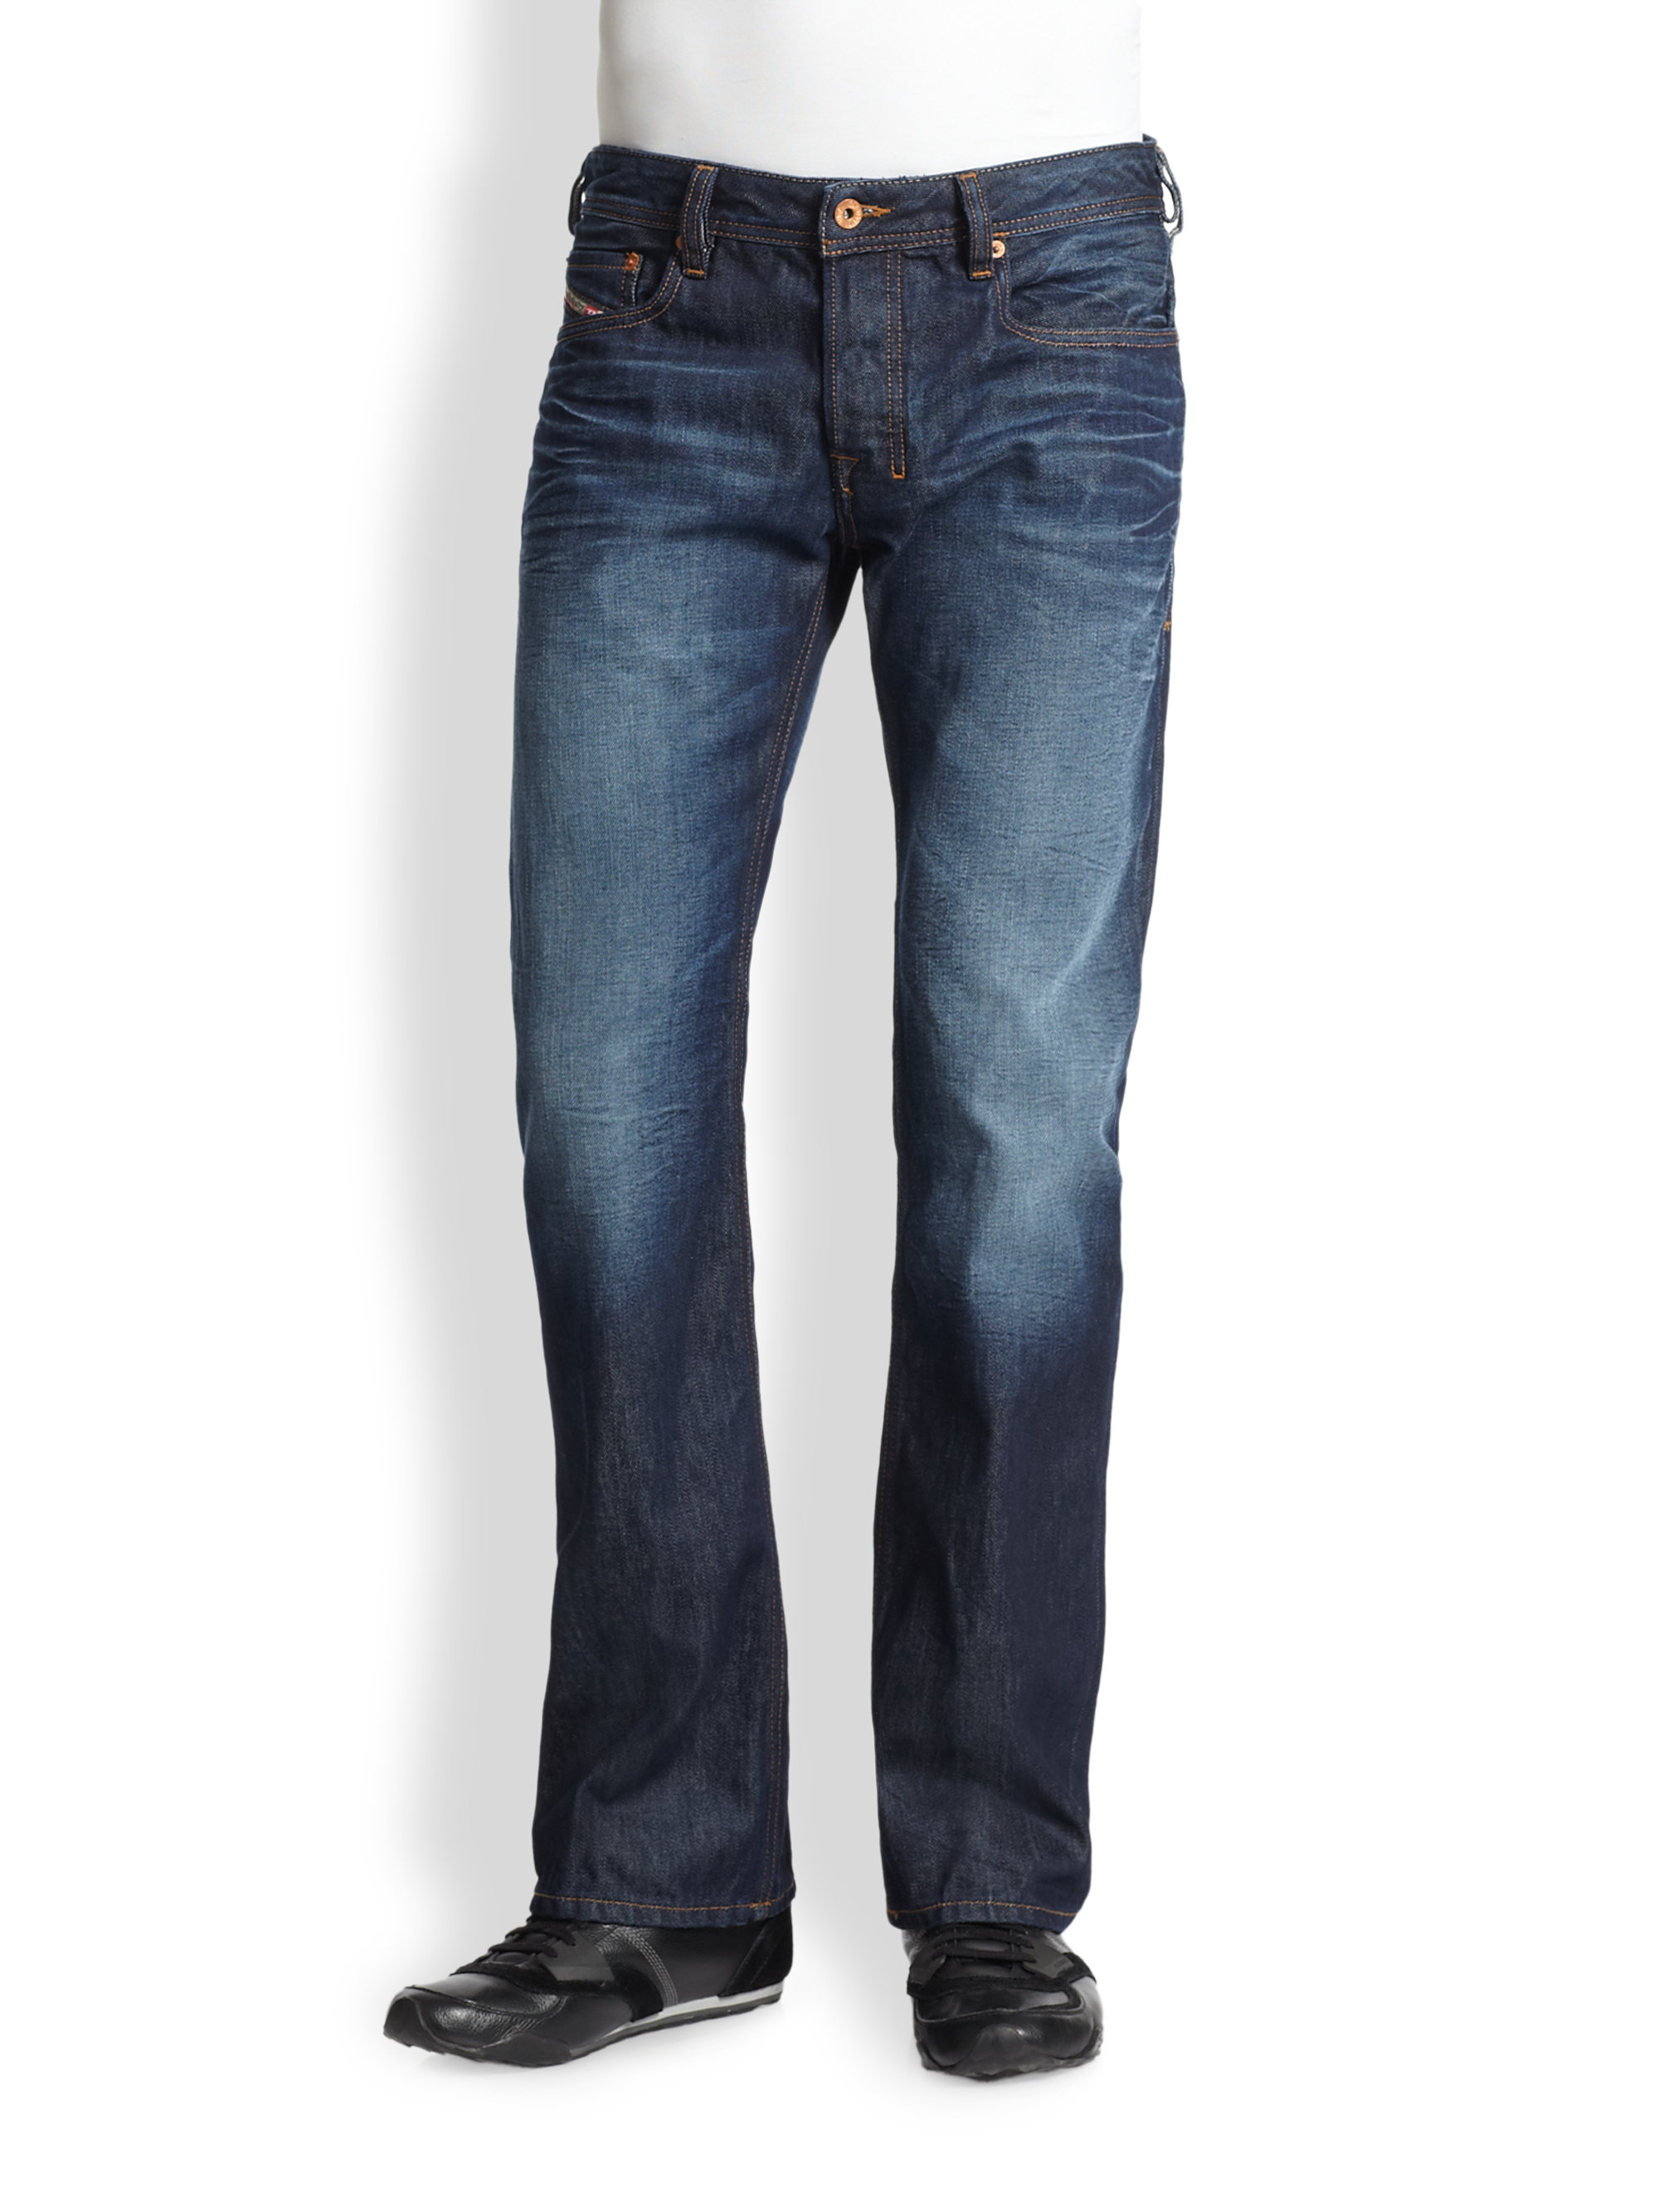 jeans for men new style with big thighs bootcut skinny